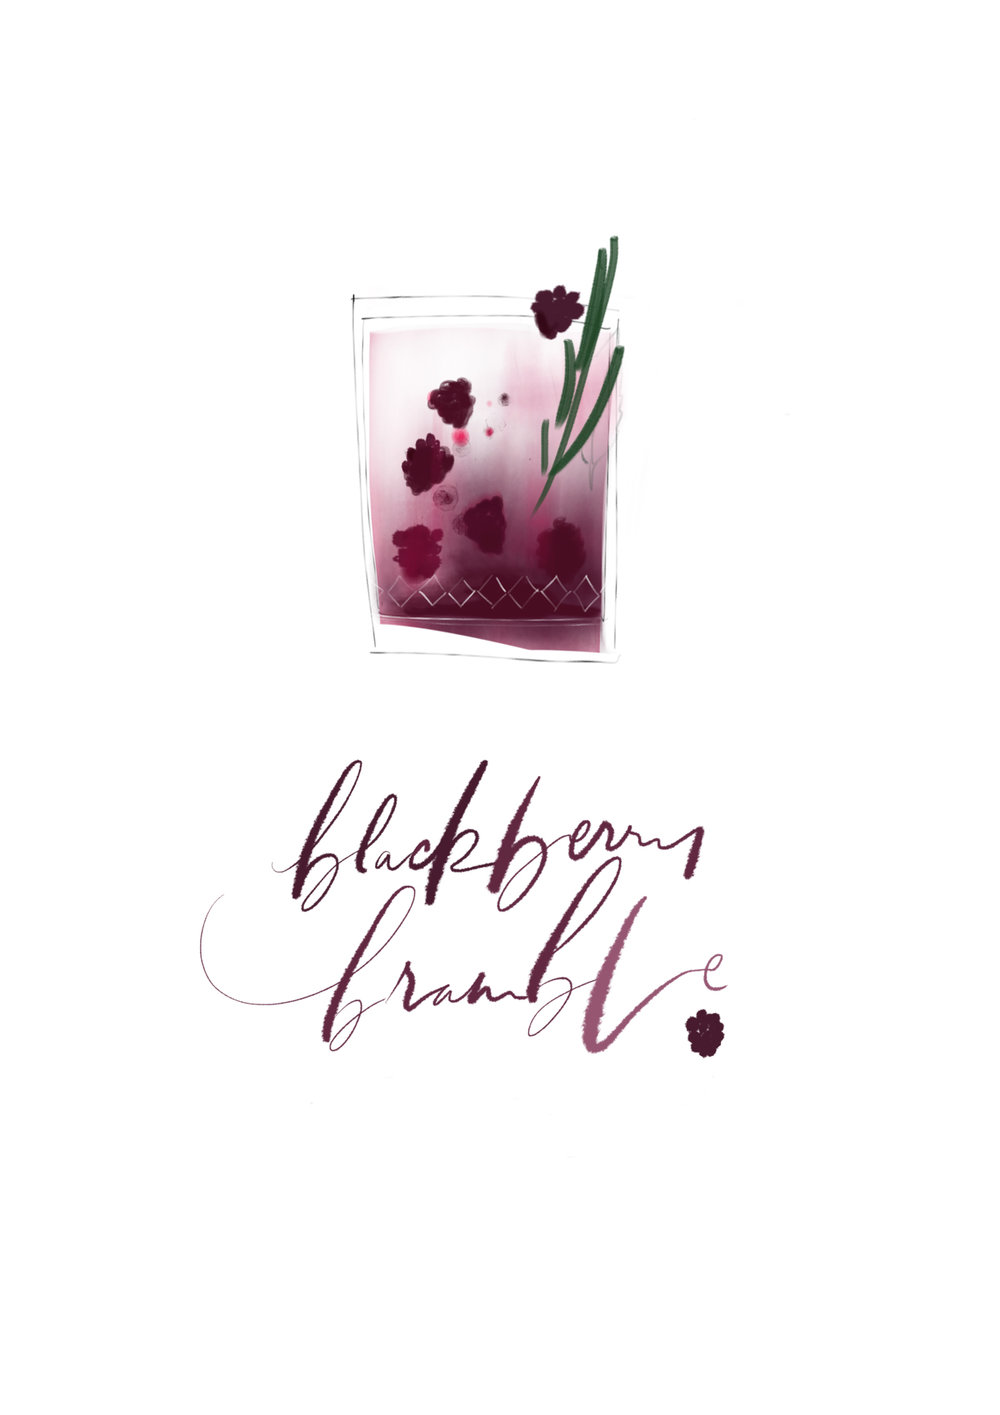 Ingredients 60ml Dry Gin 30ml Blackberry Liquor (optional) 30ml simple syrup/maple/agave 45ml lemon juice Ginger Beer or Soda Instructions - Serves 3-4 - In a cocktail shaker, muddle blackberries with gin, blackberry liquor, lemon juice and syrup until broken up and they release their juice. Double strain, using a fine mesh strainer, to remove the seeds.  Fill 3-4 glasses with ice, pour the blackberry-gin mix and top with soda or ginger beer. Garnish with a blackberry and lemon zest, if desired.